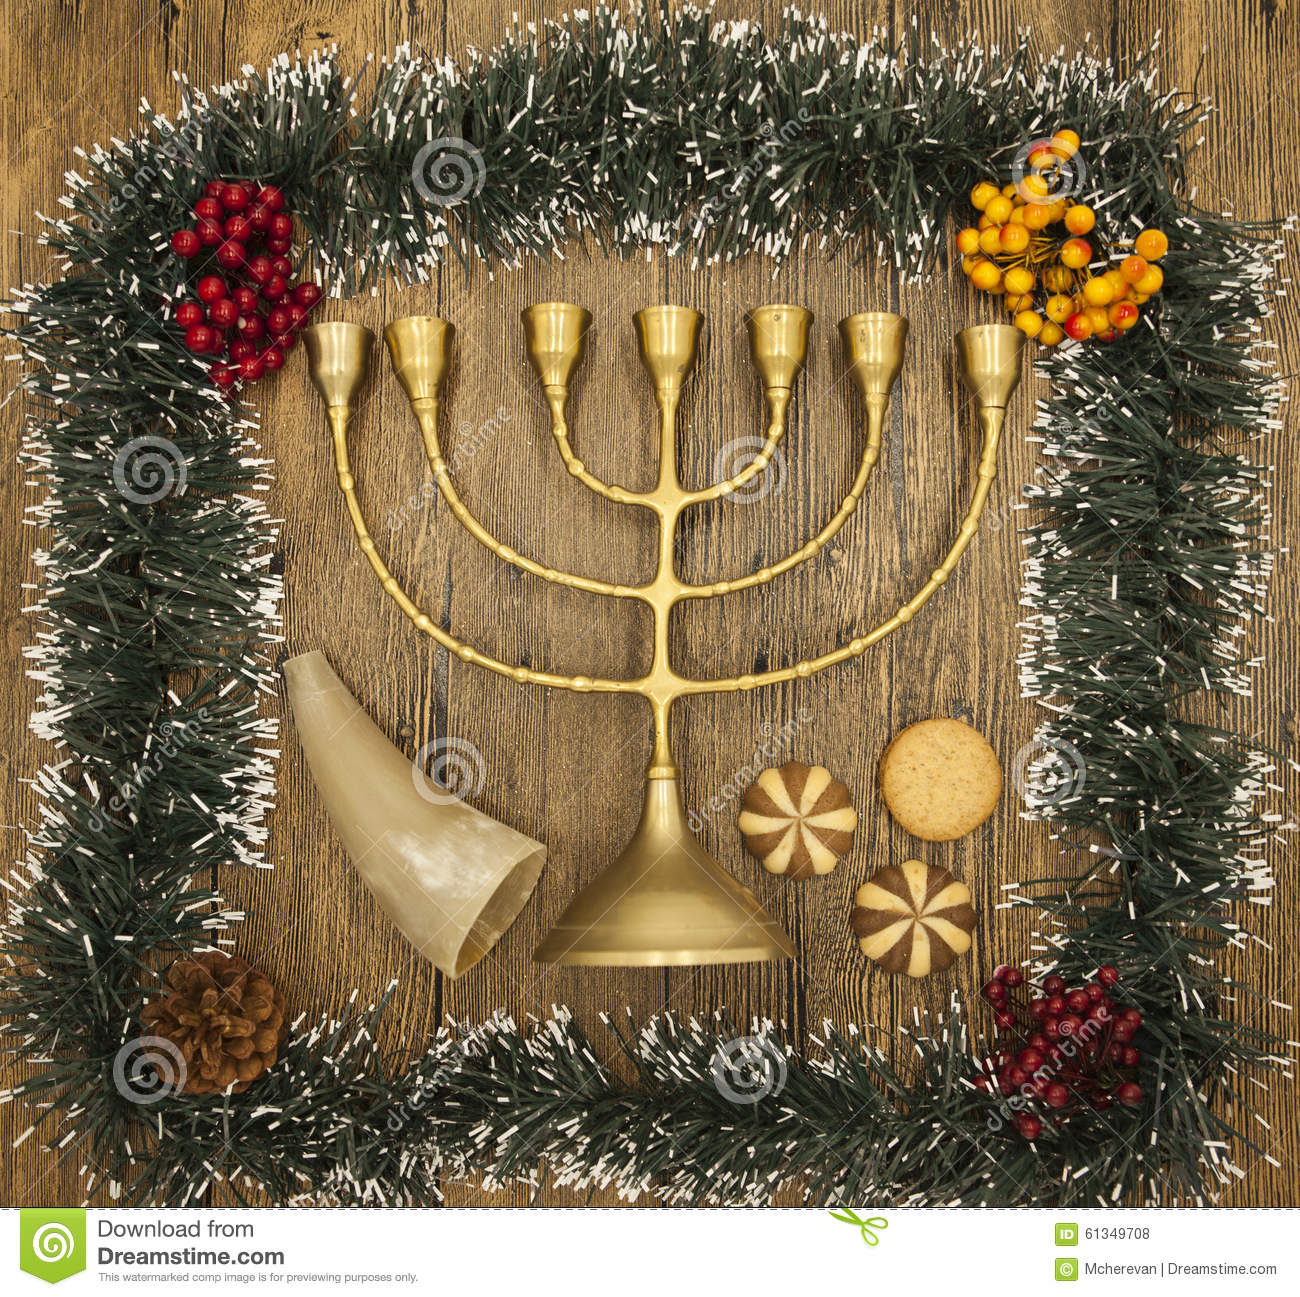 Hanukkah Is The Jewish New Year Candle With Christmas